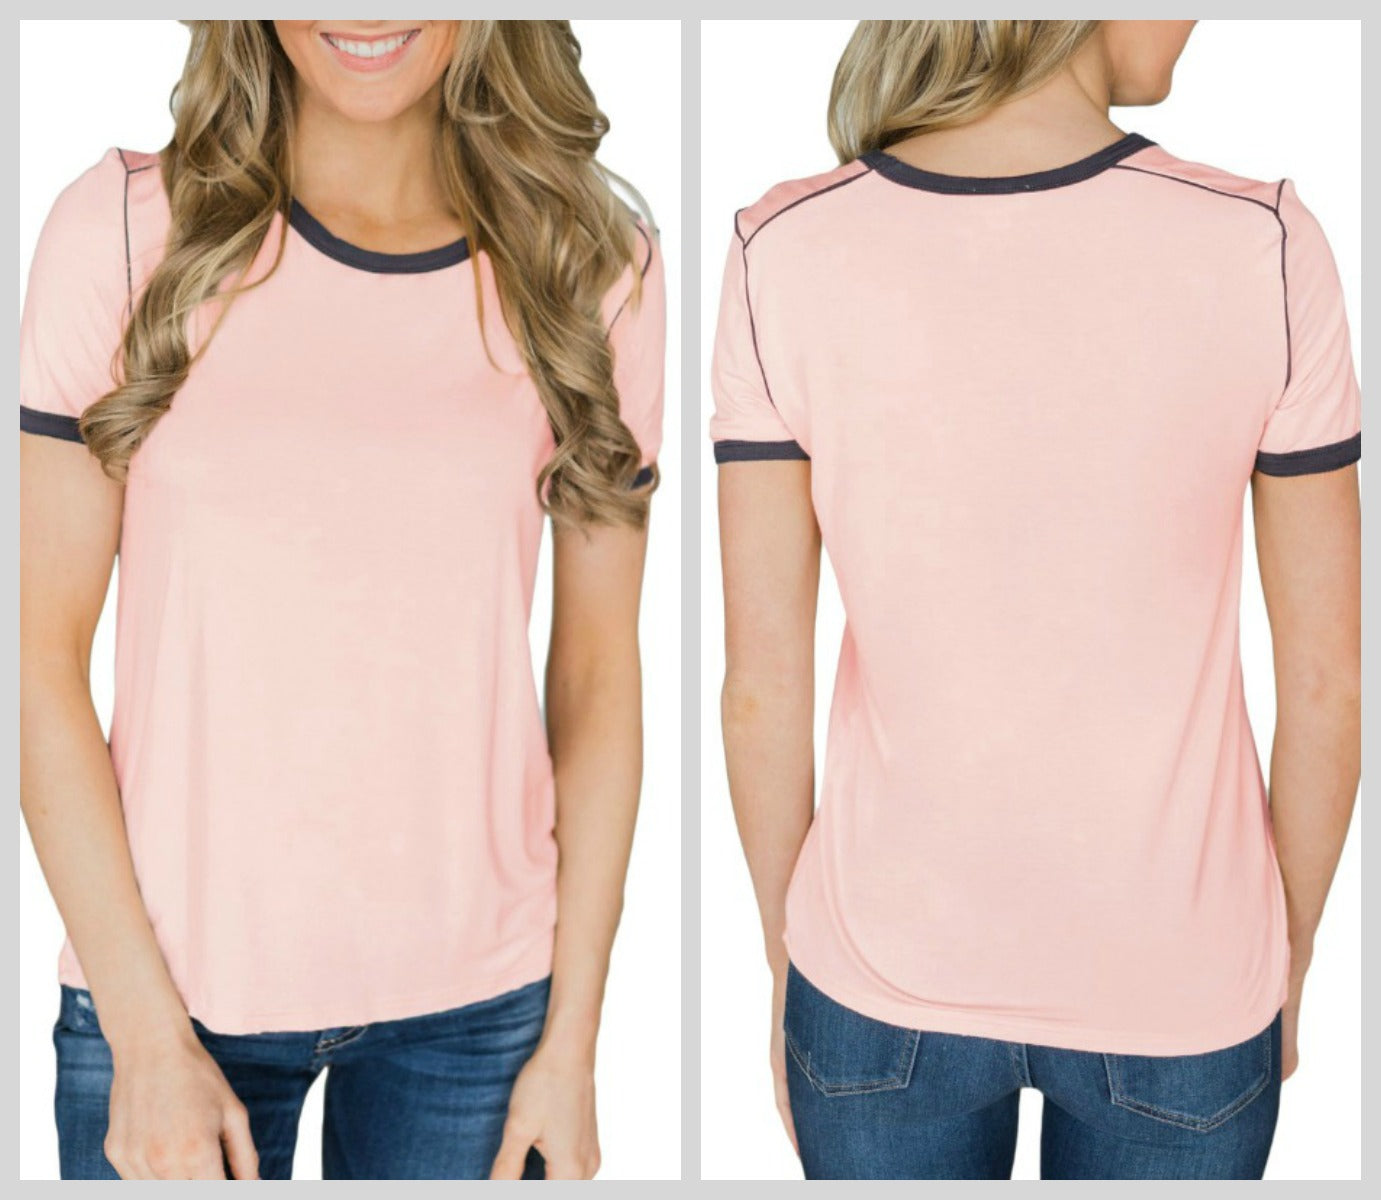 Casual Cute Suburbancloth Mom N Bab Short Tee Pink Lace Hem The Classic Ringer Top